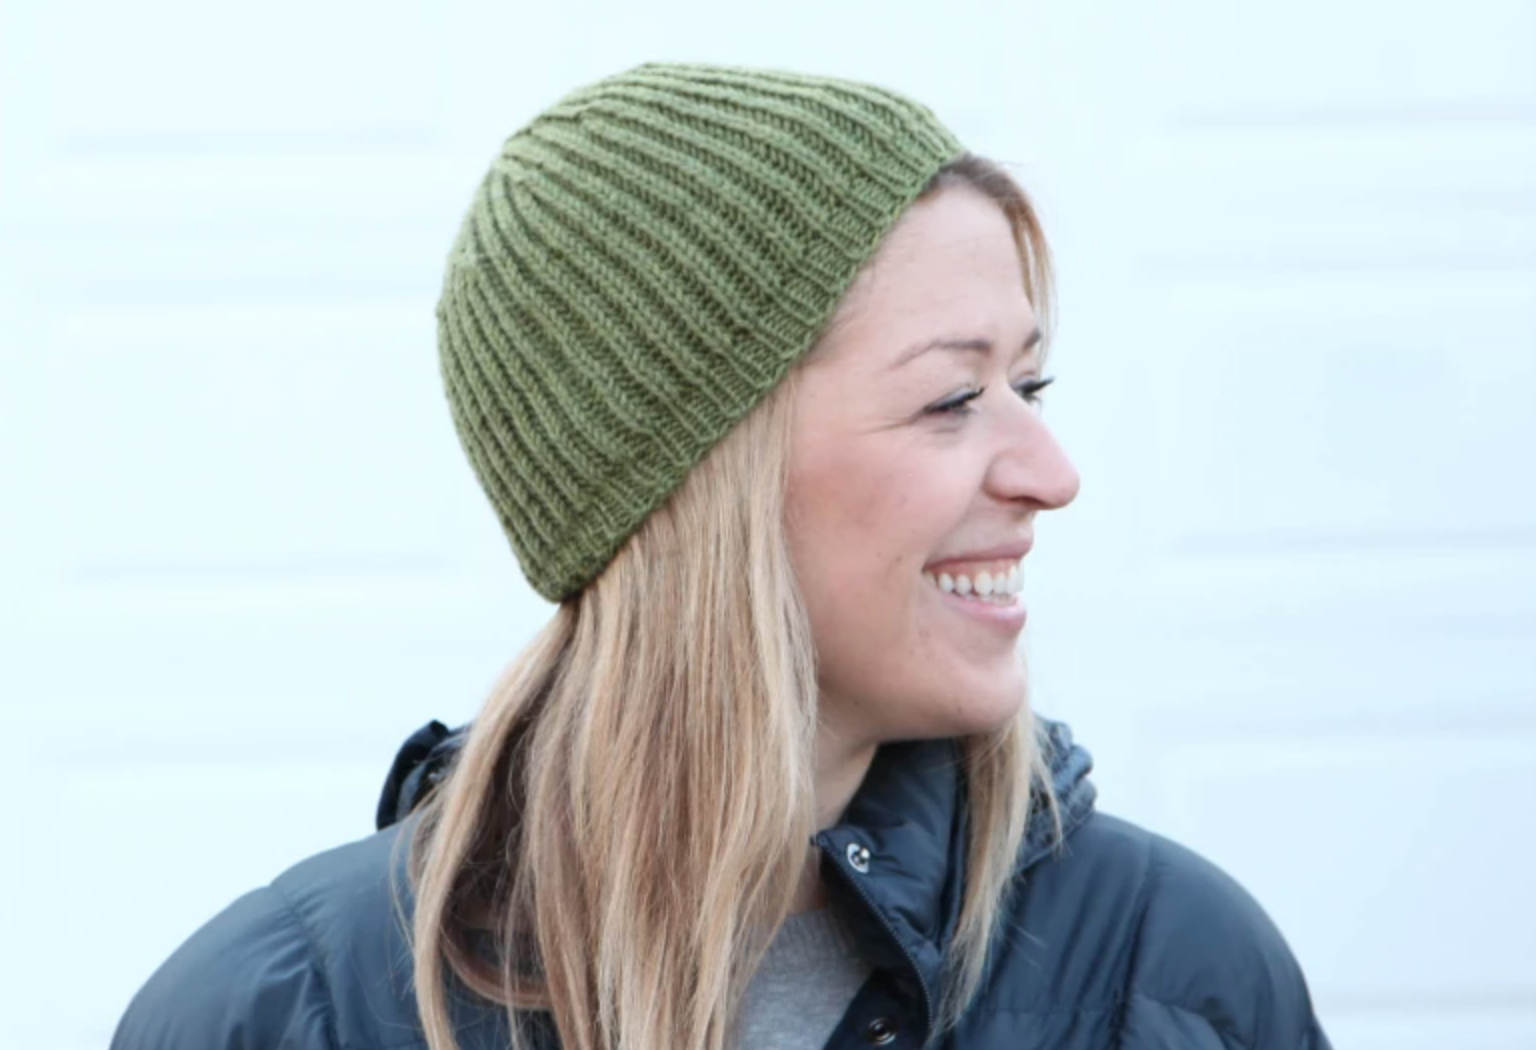 brioche knit hat